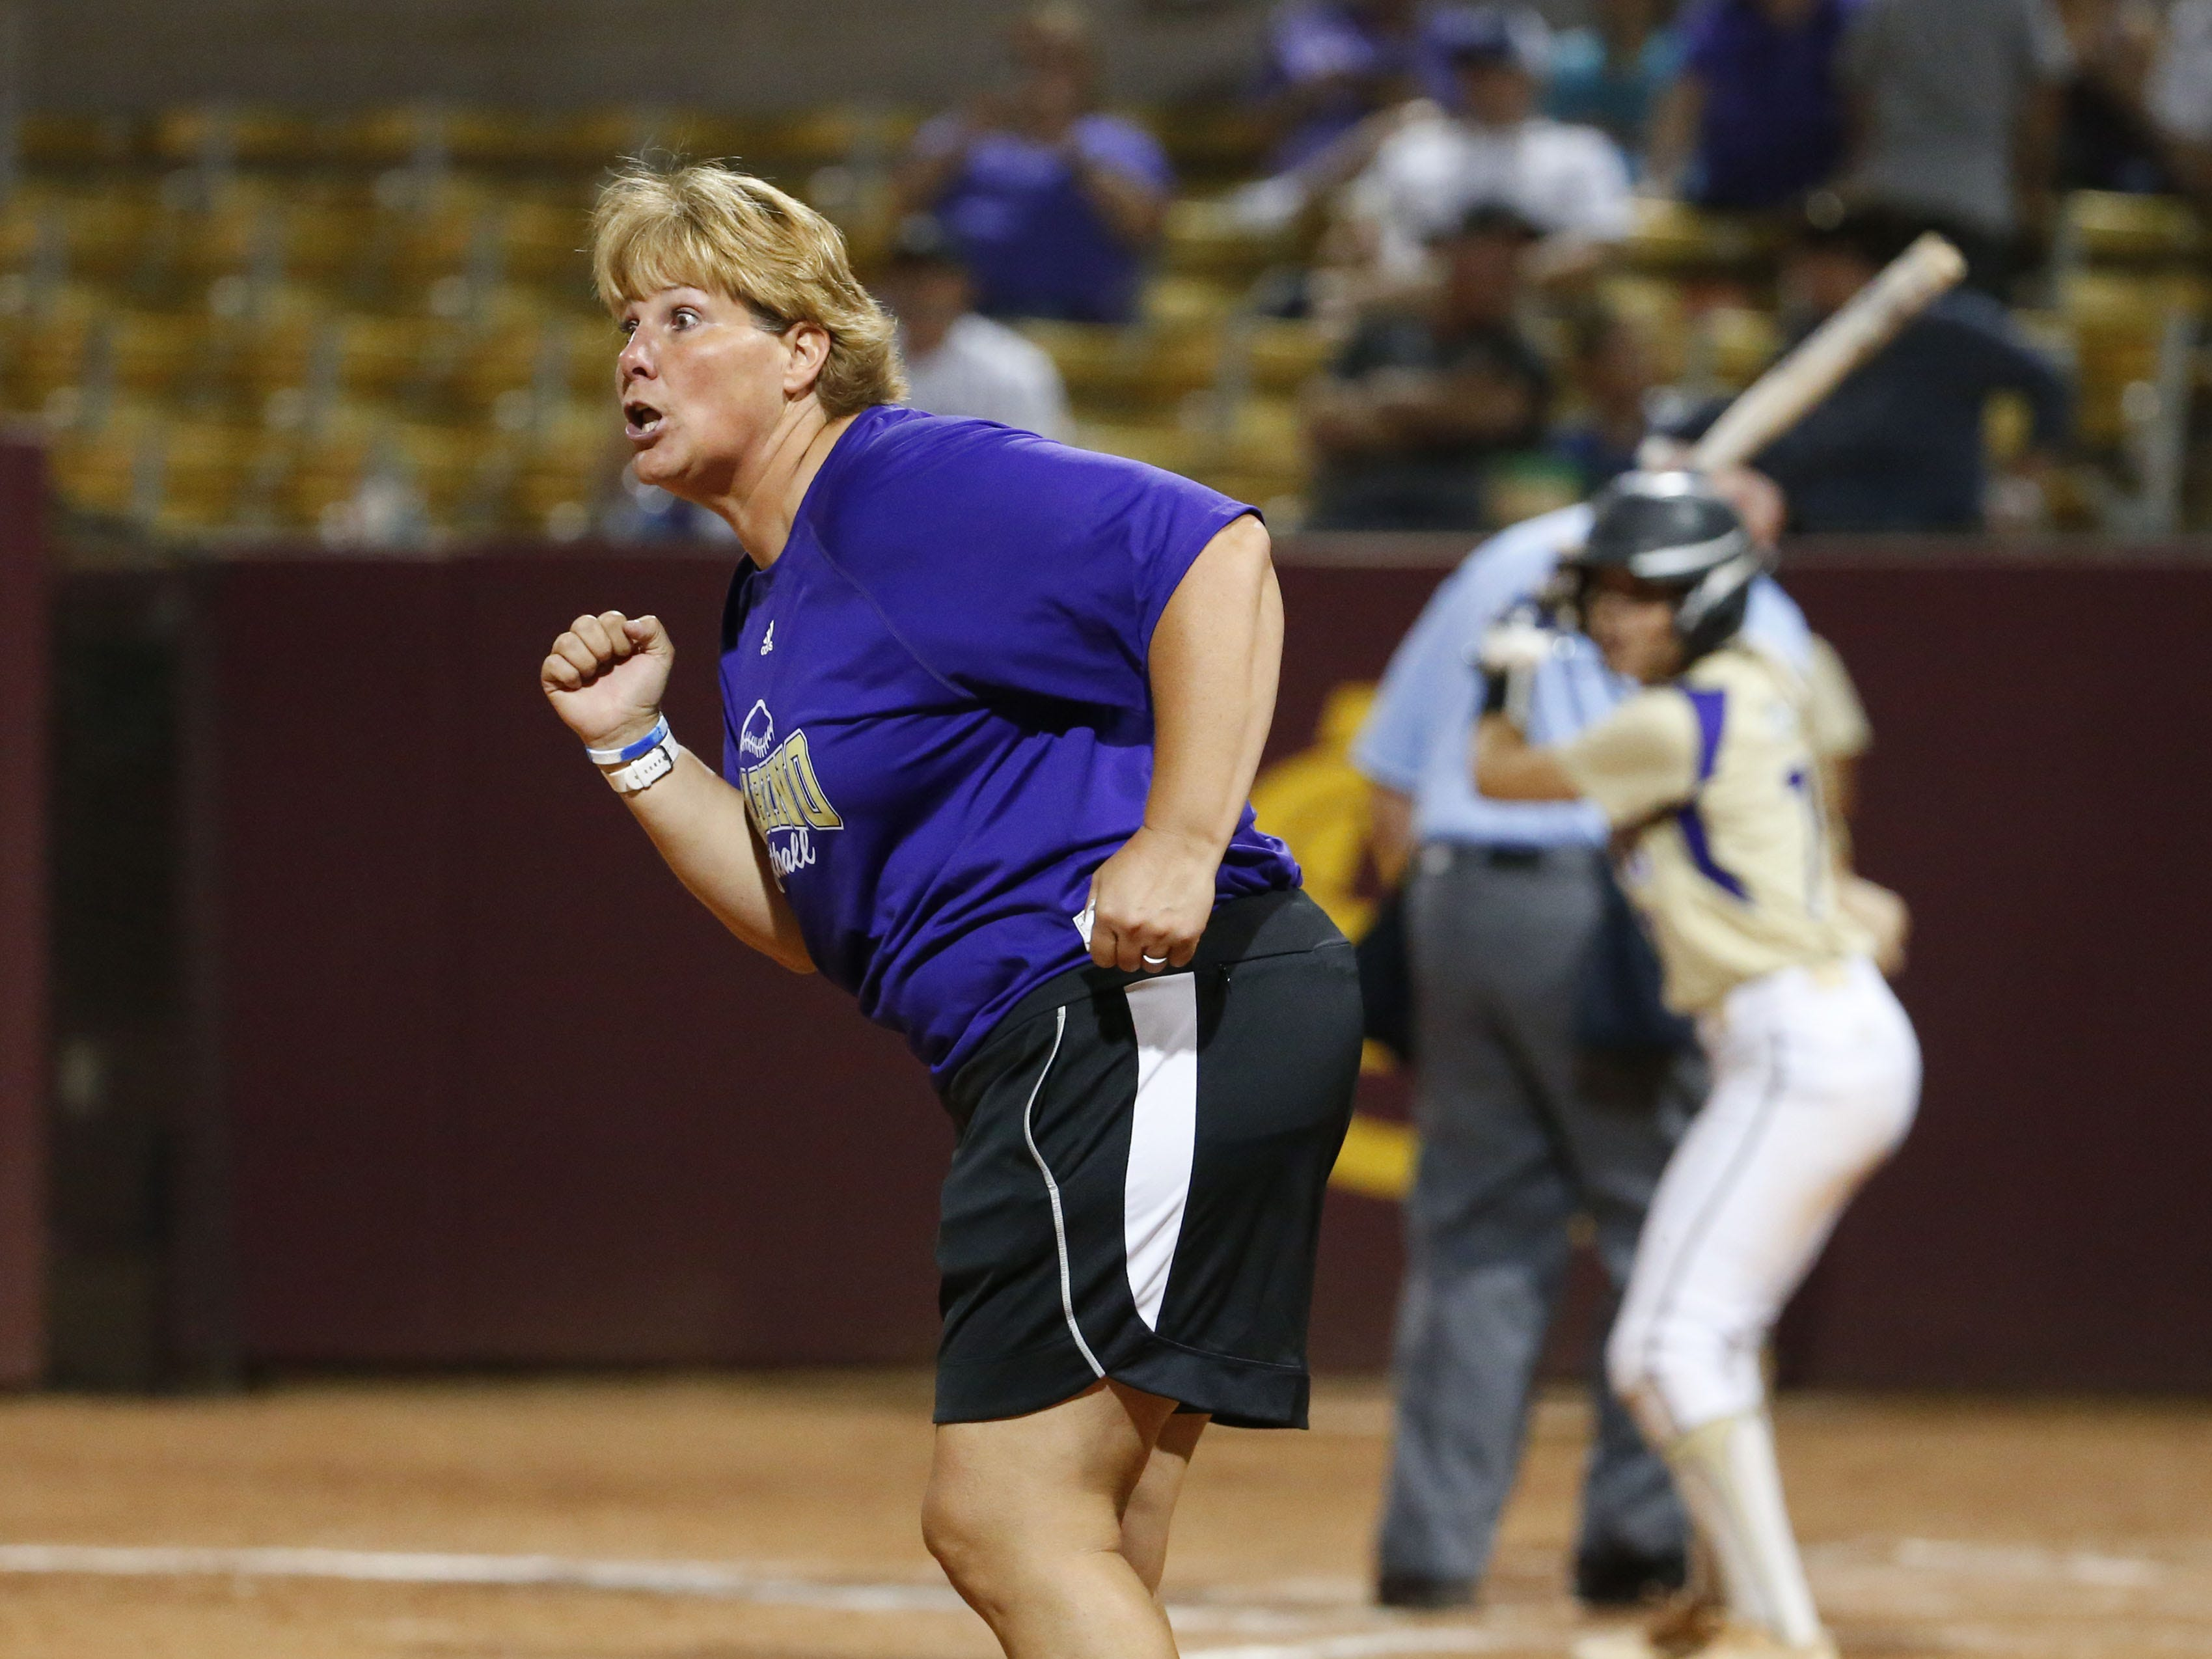 Sabino head coach Chris Stainer reacts to a hit against Snowflake during the 3A softball state championship game in Tempe May 6, 2019.